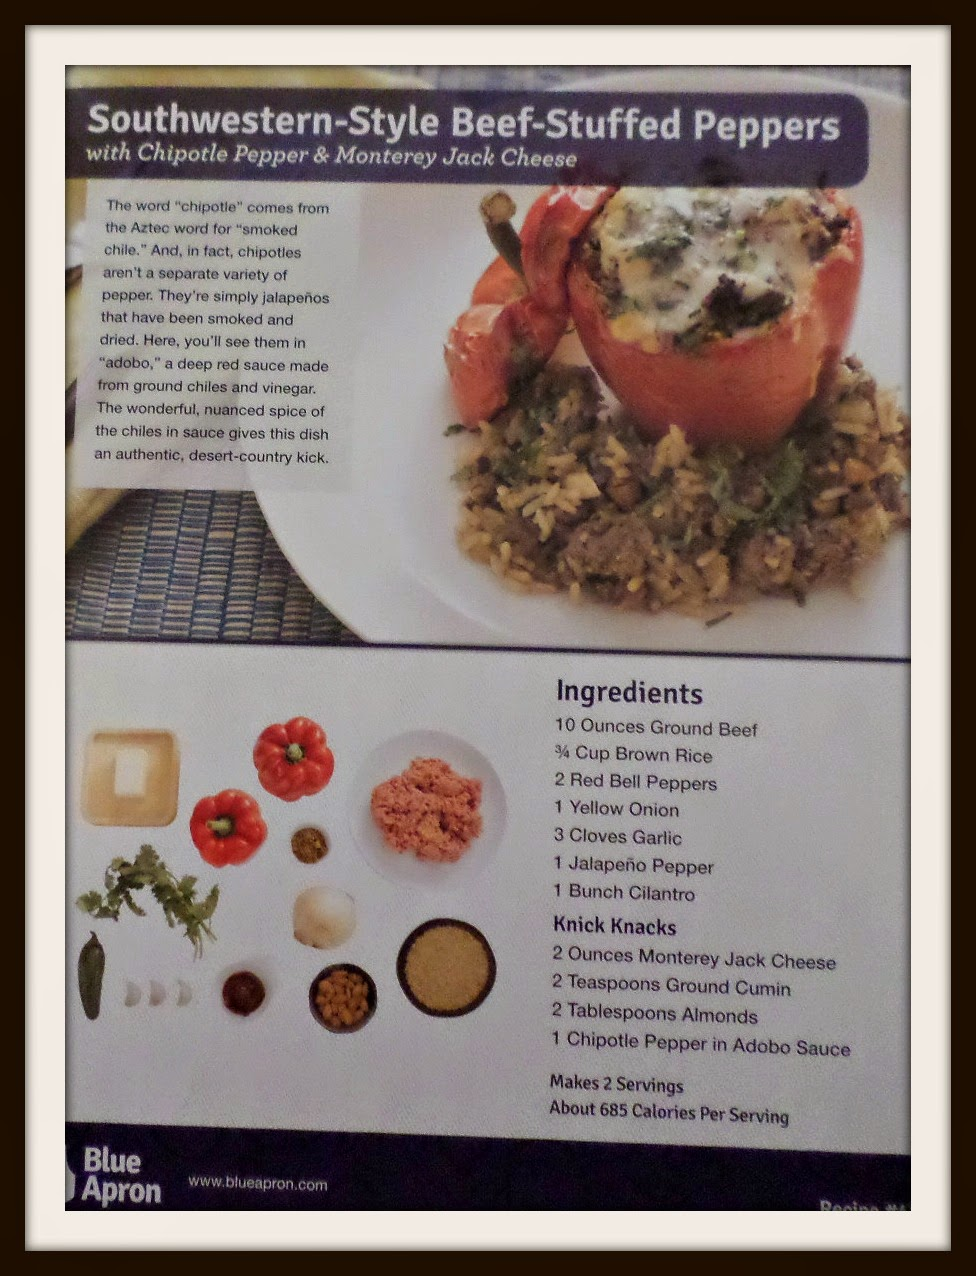 Blue apron yellow grits - Southwestern Style Beef Stuffed Peppers Sounds Like A Winner We Ve Had Previous Stuffed Red Pepper Recipes And Really Enjoyed Them